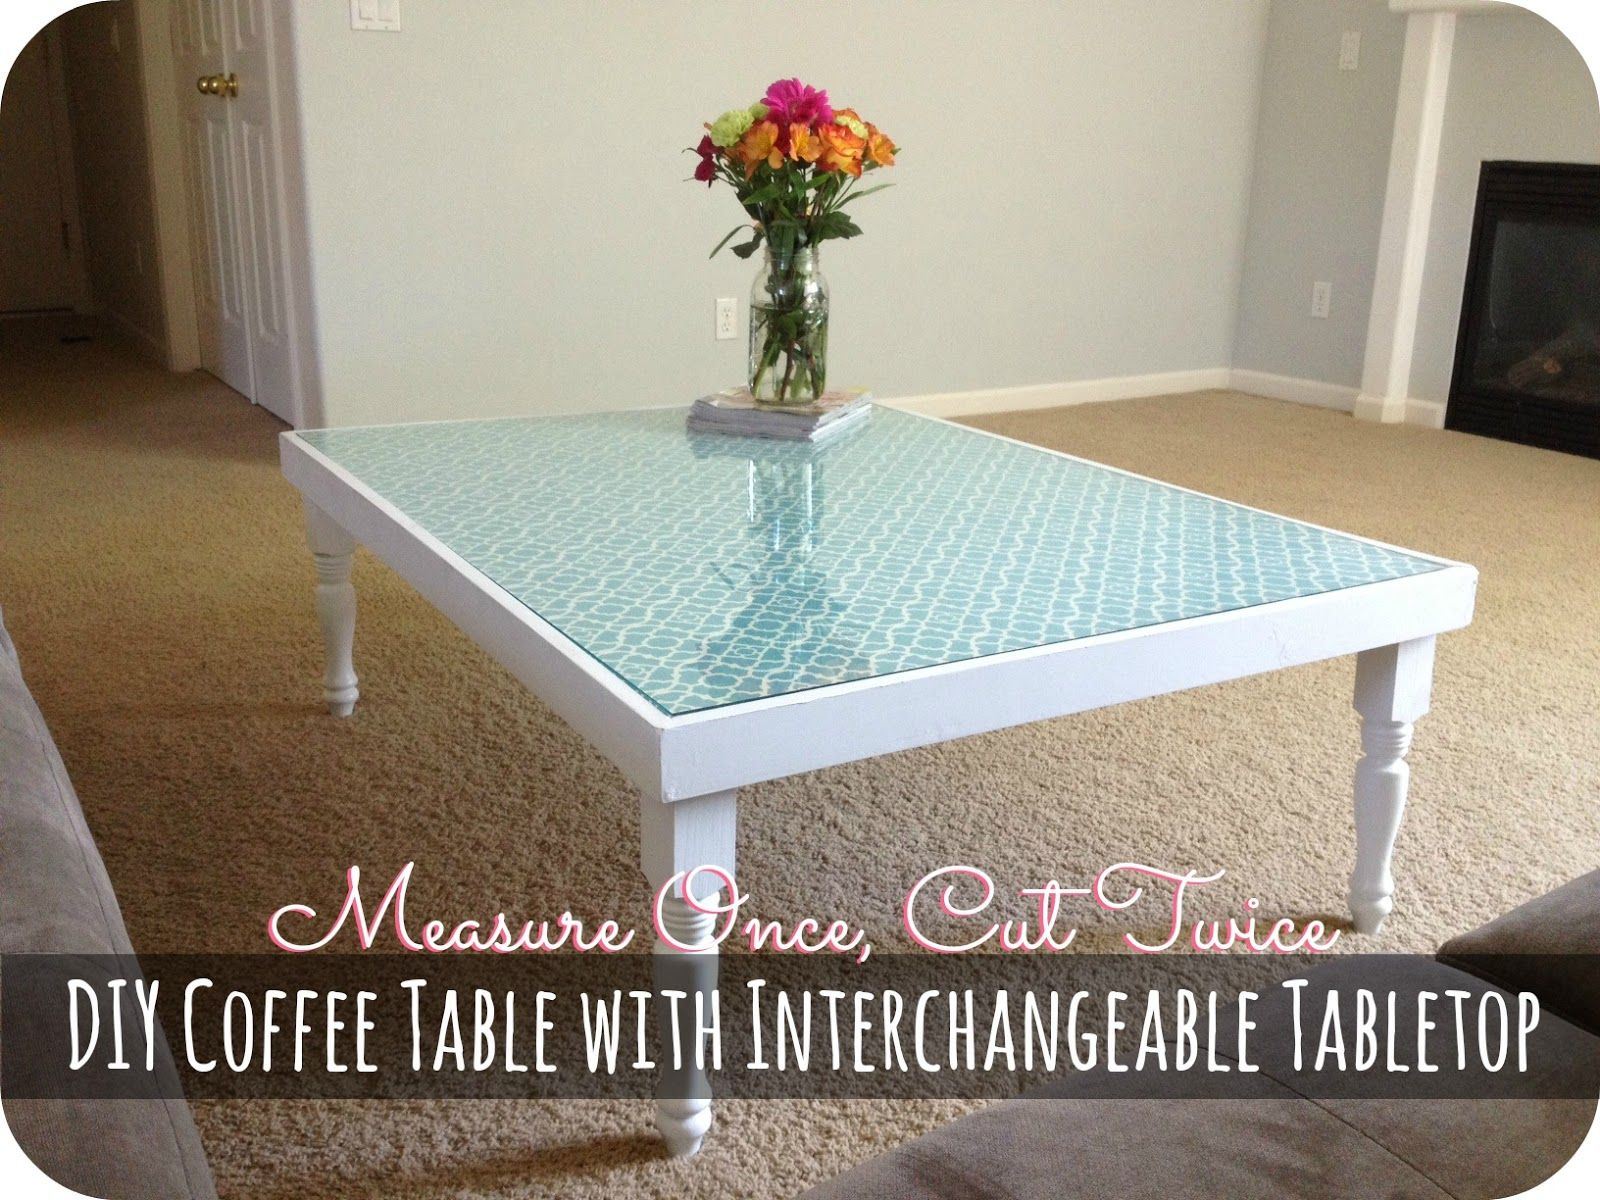 Diy Glass Top Coffee Tables Google Search Coffee Table Diy Coffee Table Table [ 1200 x 1600 Pixel ]